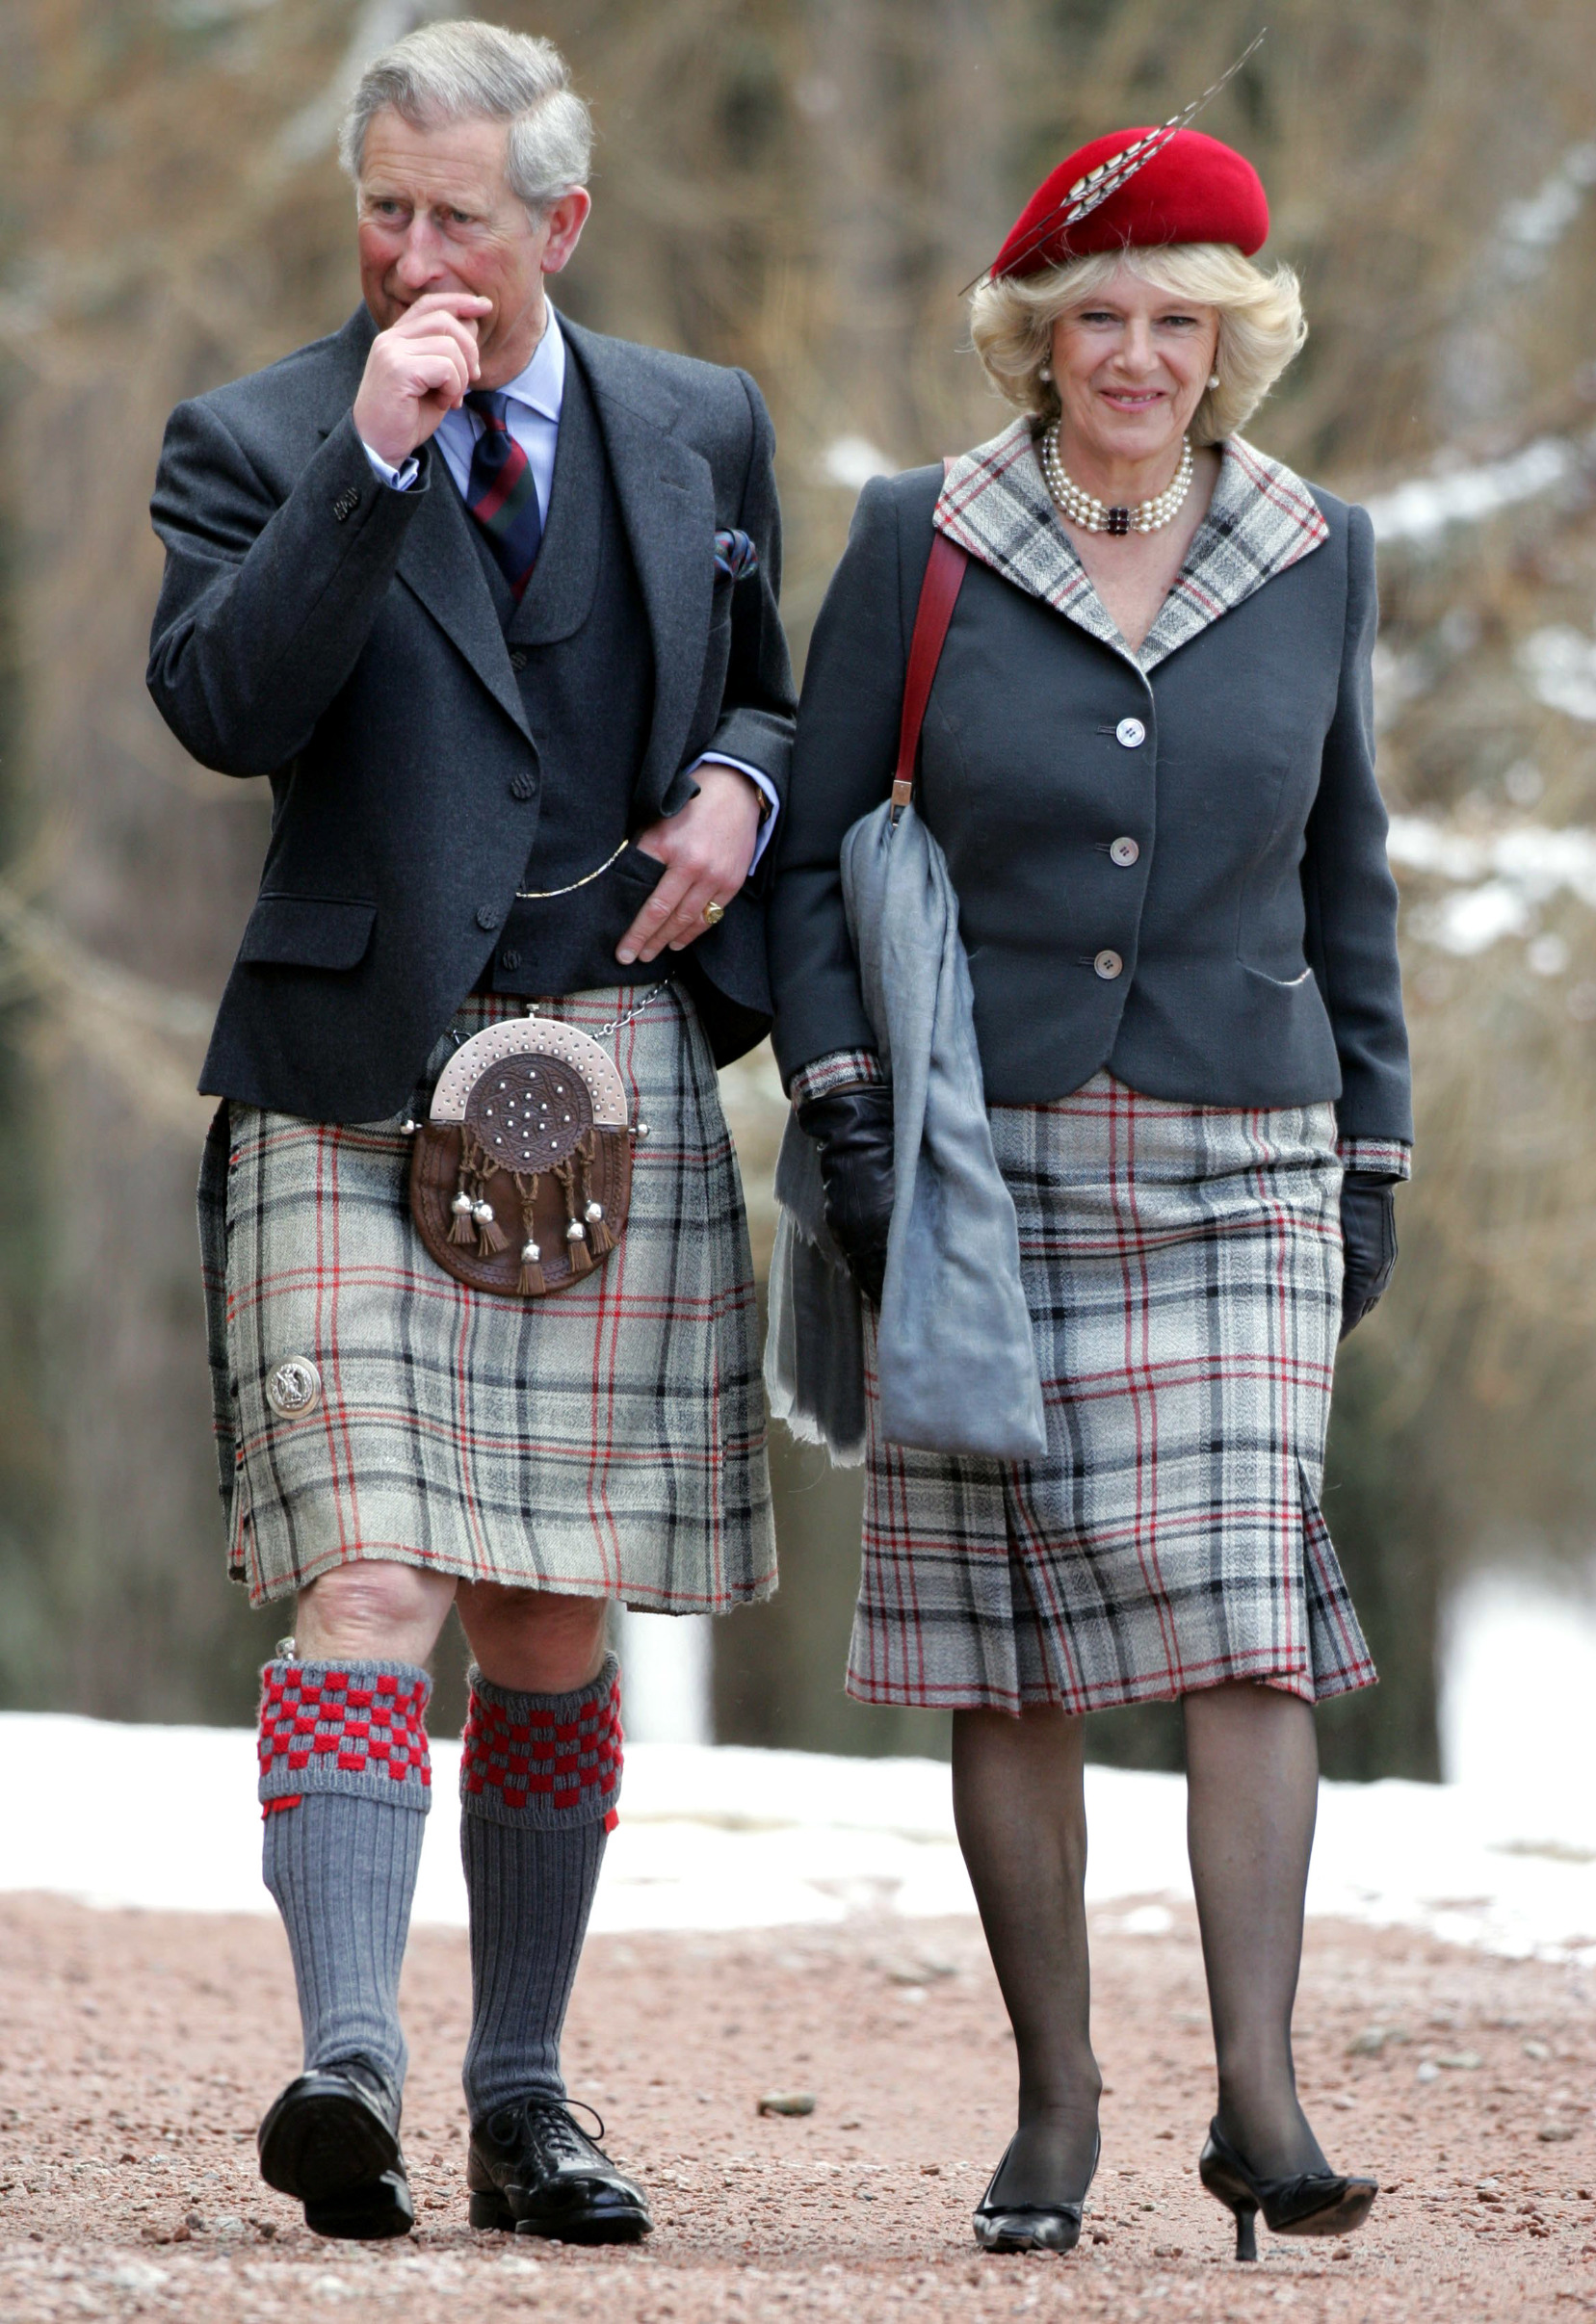 Prince Charles and Camilla, Duchess of Cornwall PRINCE CHARLES AND CAMILLA, DUCHESS OF CORNWALL AT CRATHIE CHURCH ON THE FIRST ANNIVERSARY OF THEIR WEDDING, SCOTLAND, BRITAIN - 09 APR 2006,Image: 223654079, License: Rights-managed, Restrictions: , Model Release: no, Credit line: Tim Rooke / Shutterstock Editorial / Profimedia